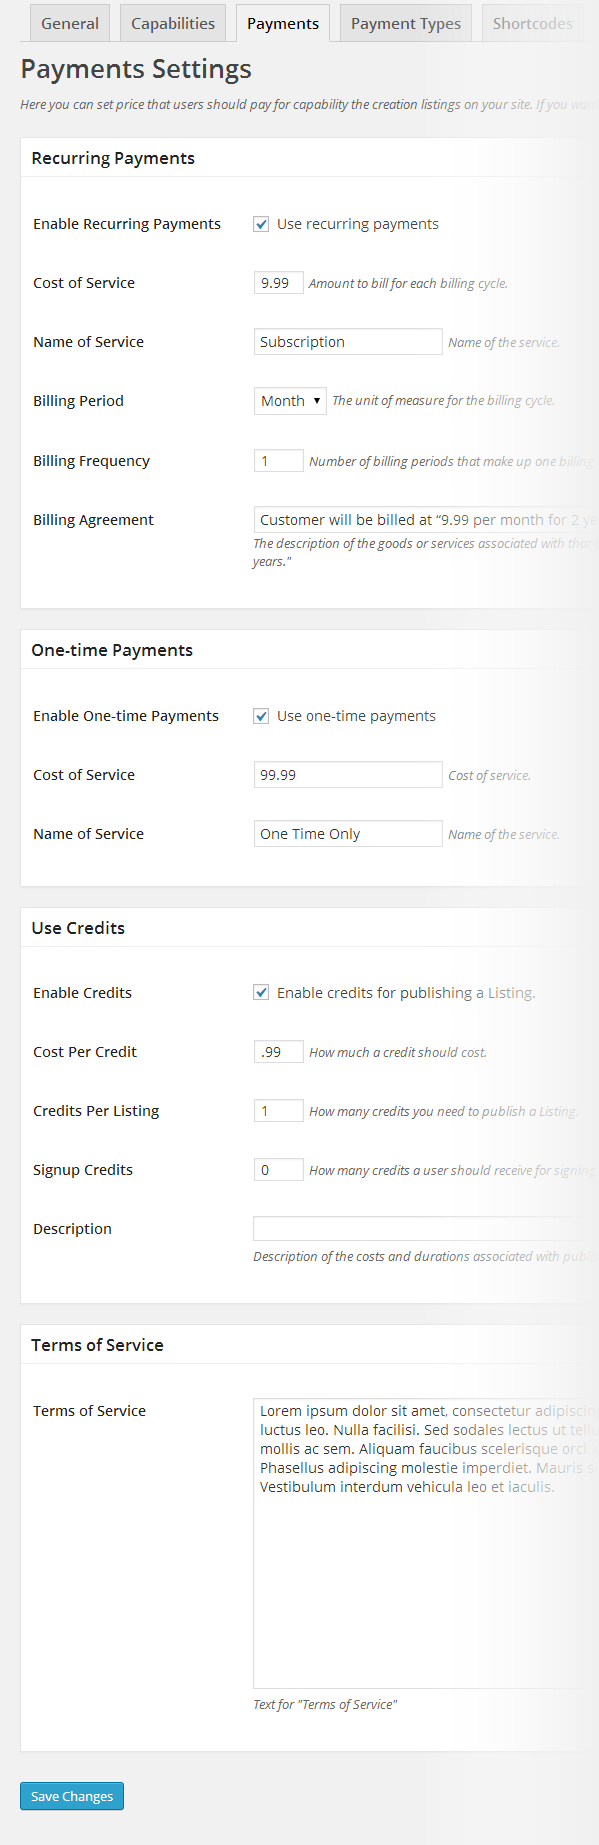 Directory payment settings